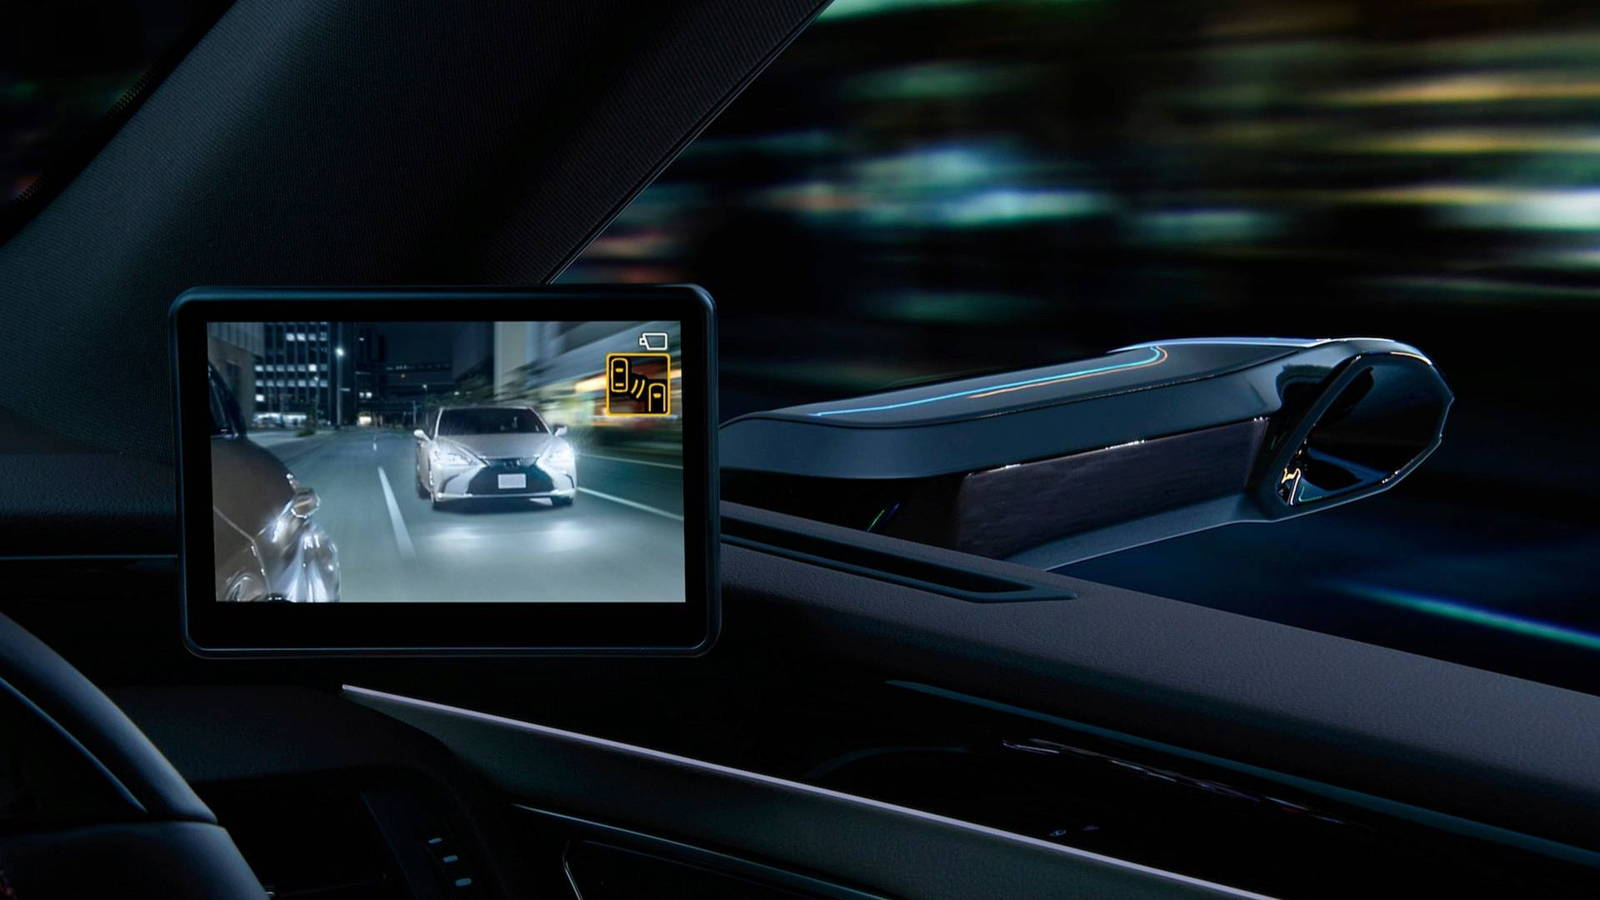 JDM 2019 ES Models Will Get Cameras Instead of Mirrors